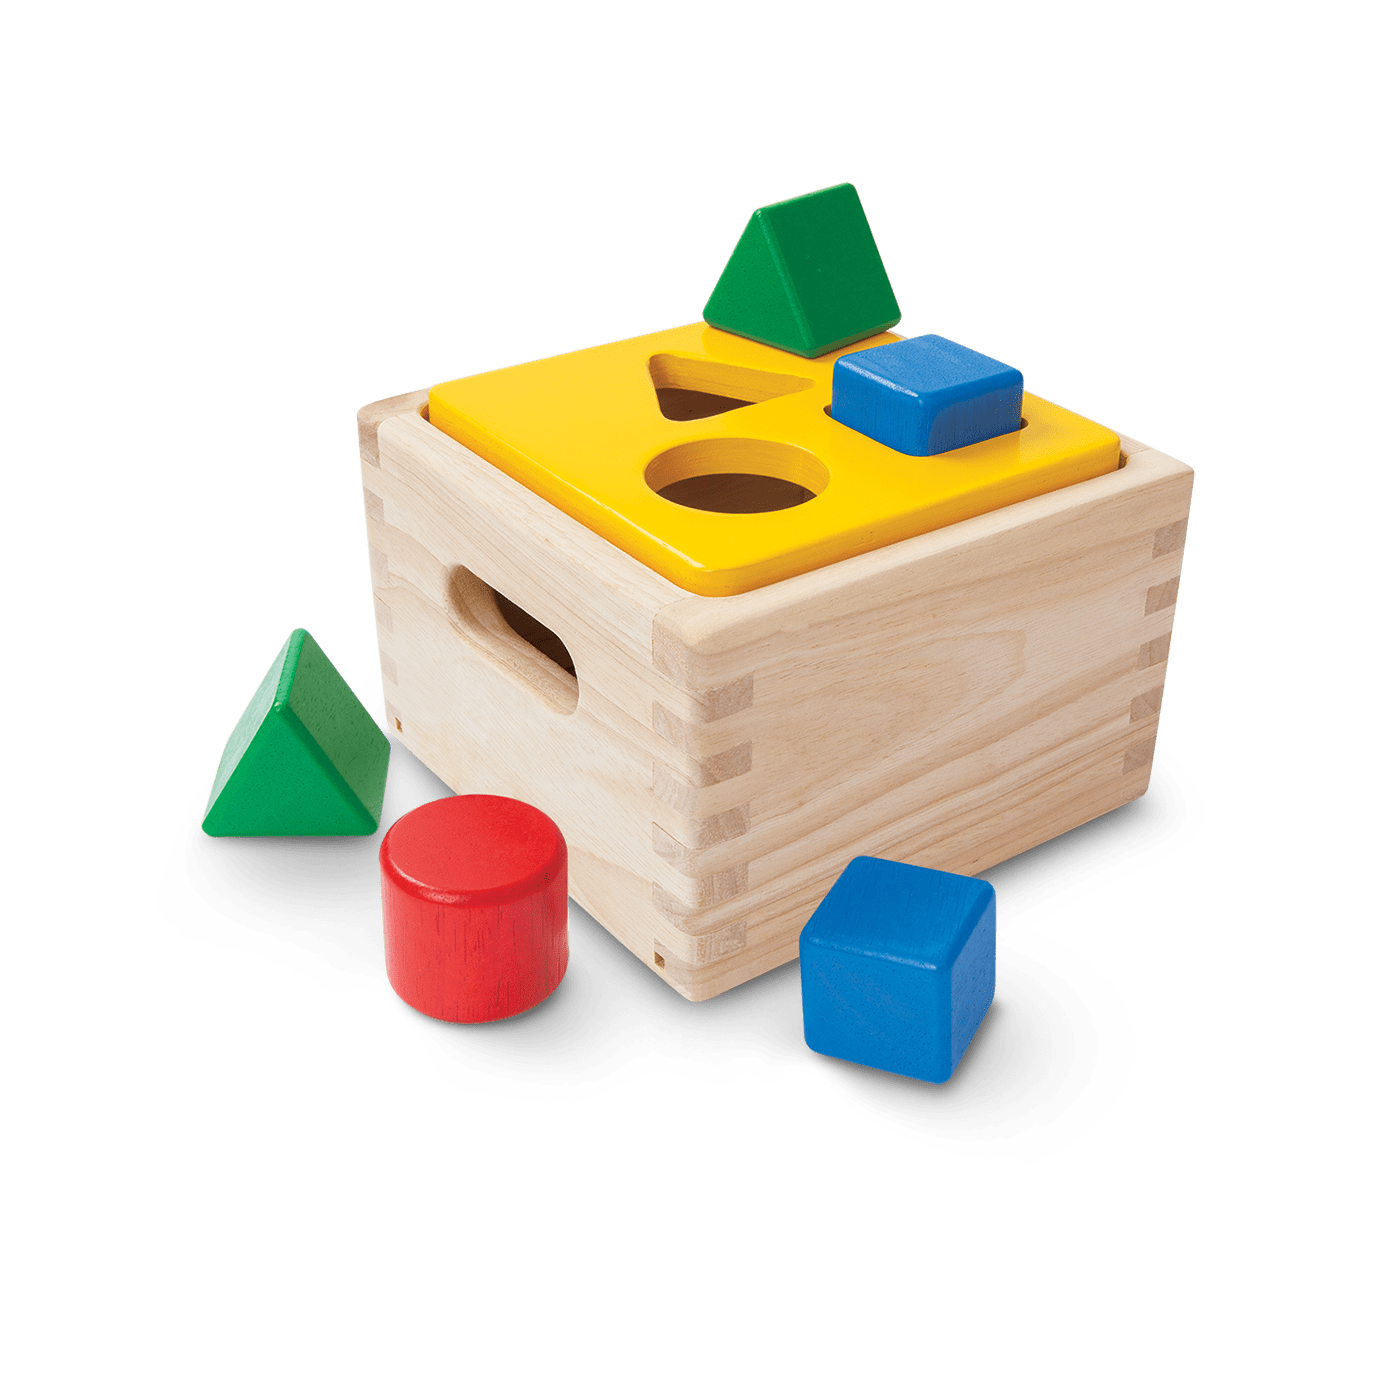 9430_PlanToys_SHAPE_and_SORT_IT_OUT_Learning_and_Education_Mathematical_Fine_Motor_Language_and_Communications_12m_Wooden_toys_Education_toys_Safety_Toys_Non-toxic_0.png